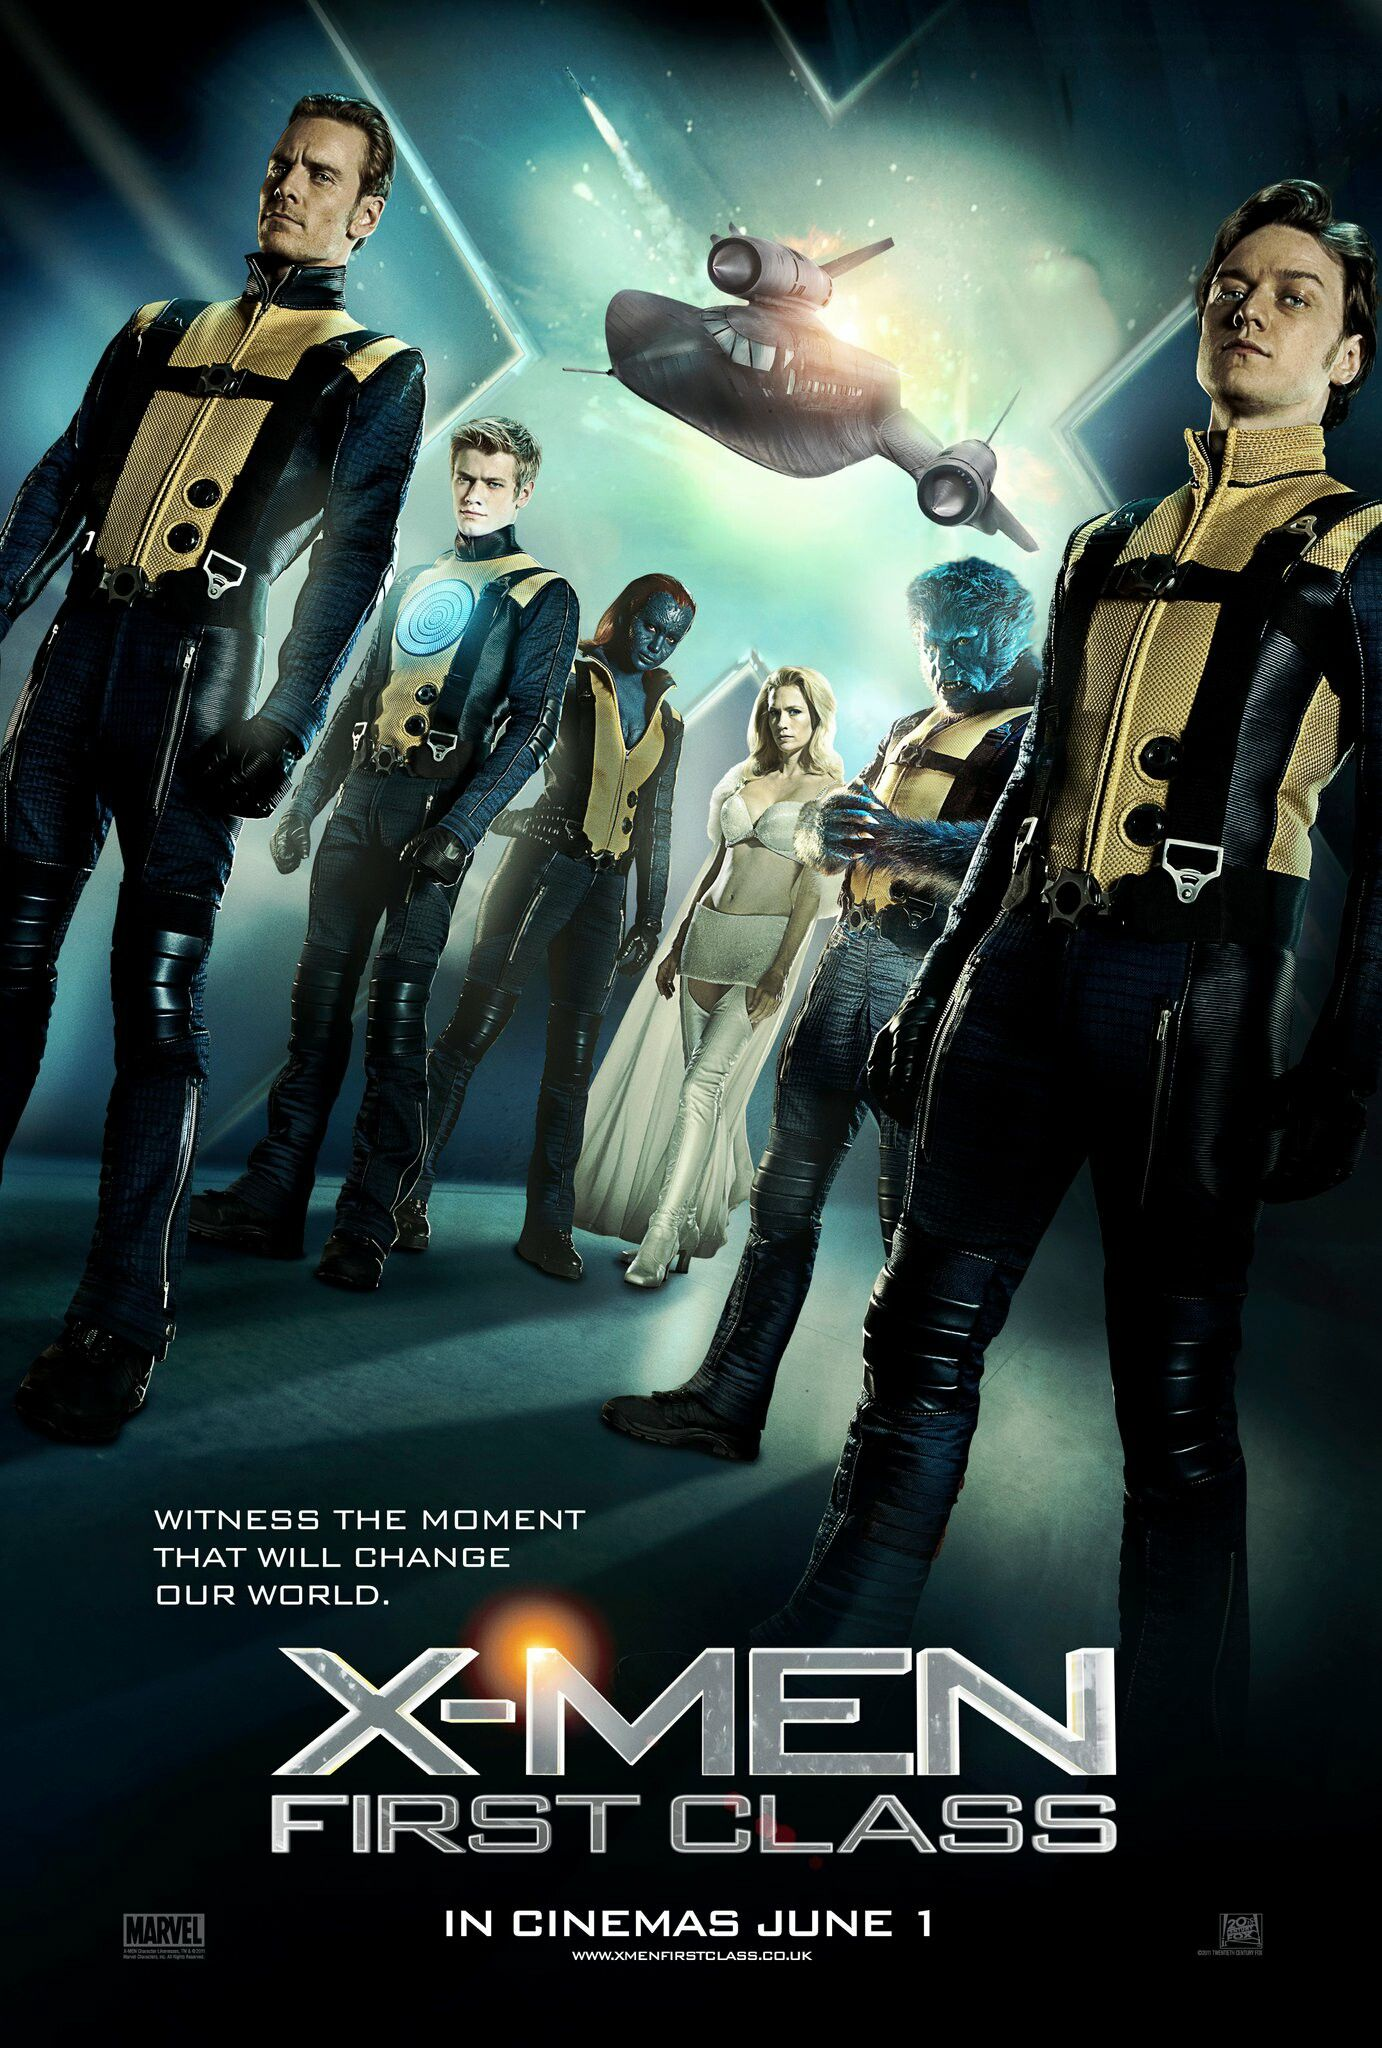 X Men 5 First Class 2011 James Mcavoy Michael Fassbender Jennifer Lawrence Kevin Bacon Man Movies Superhero Movies Marvel Movies